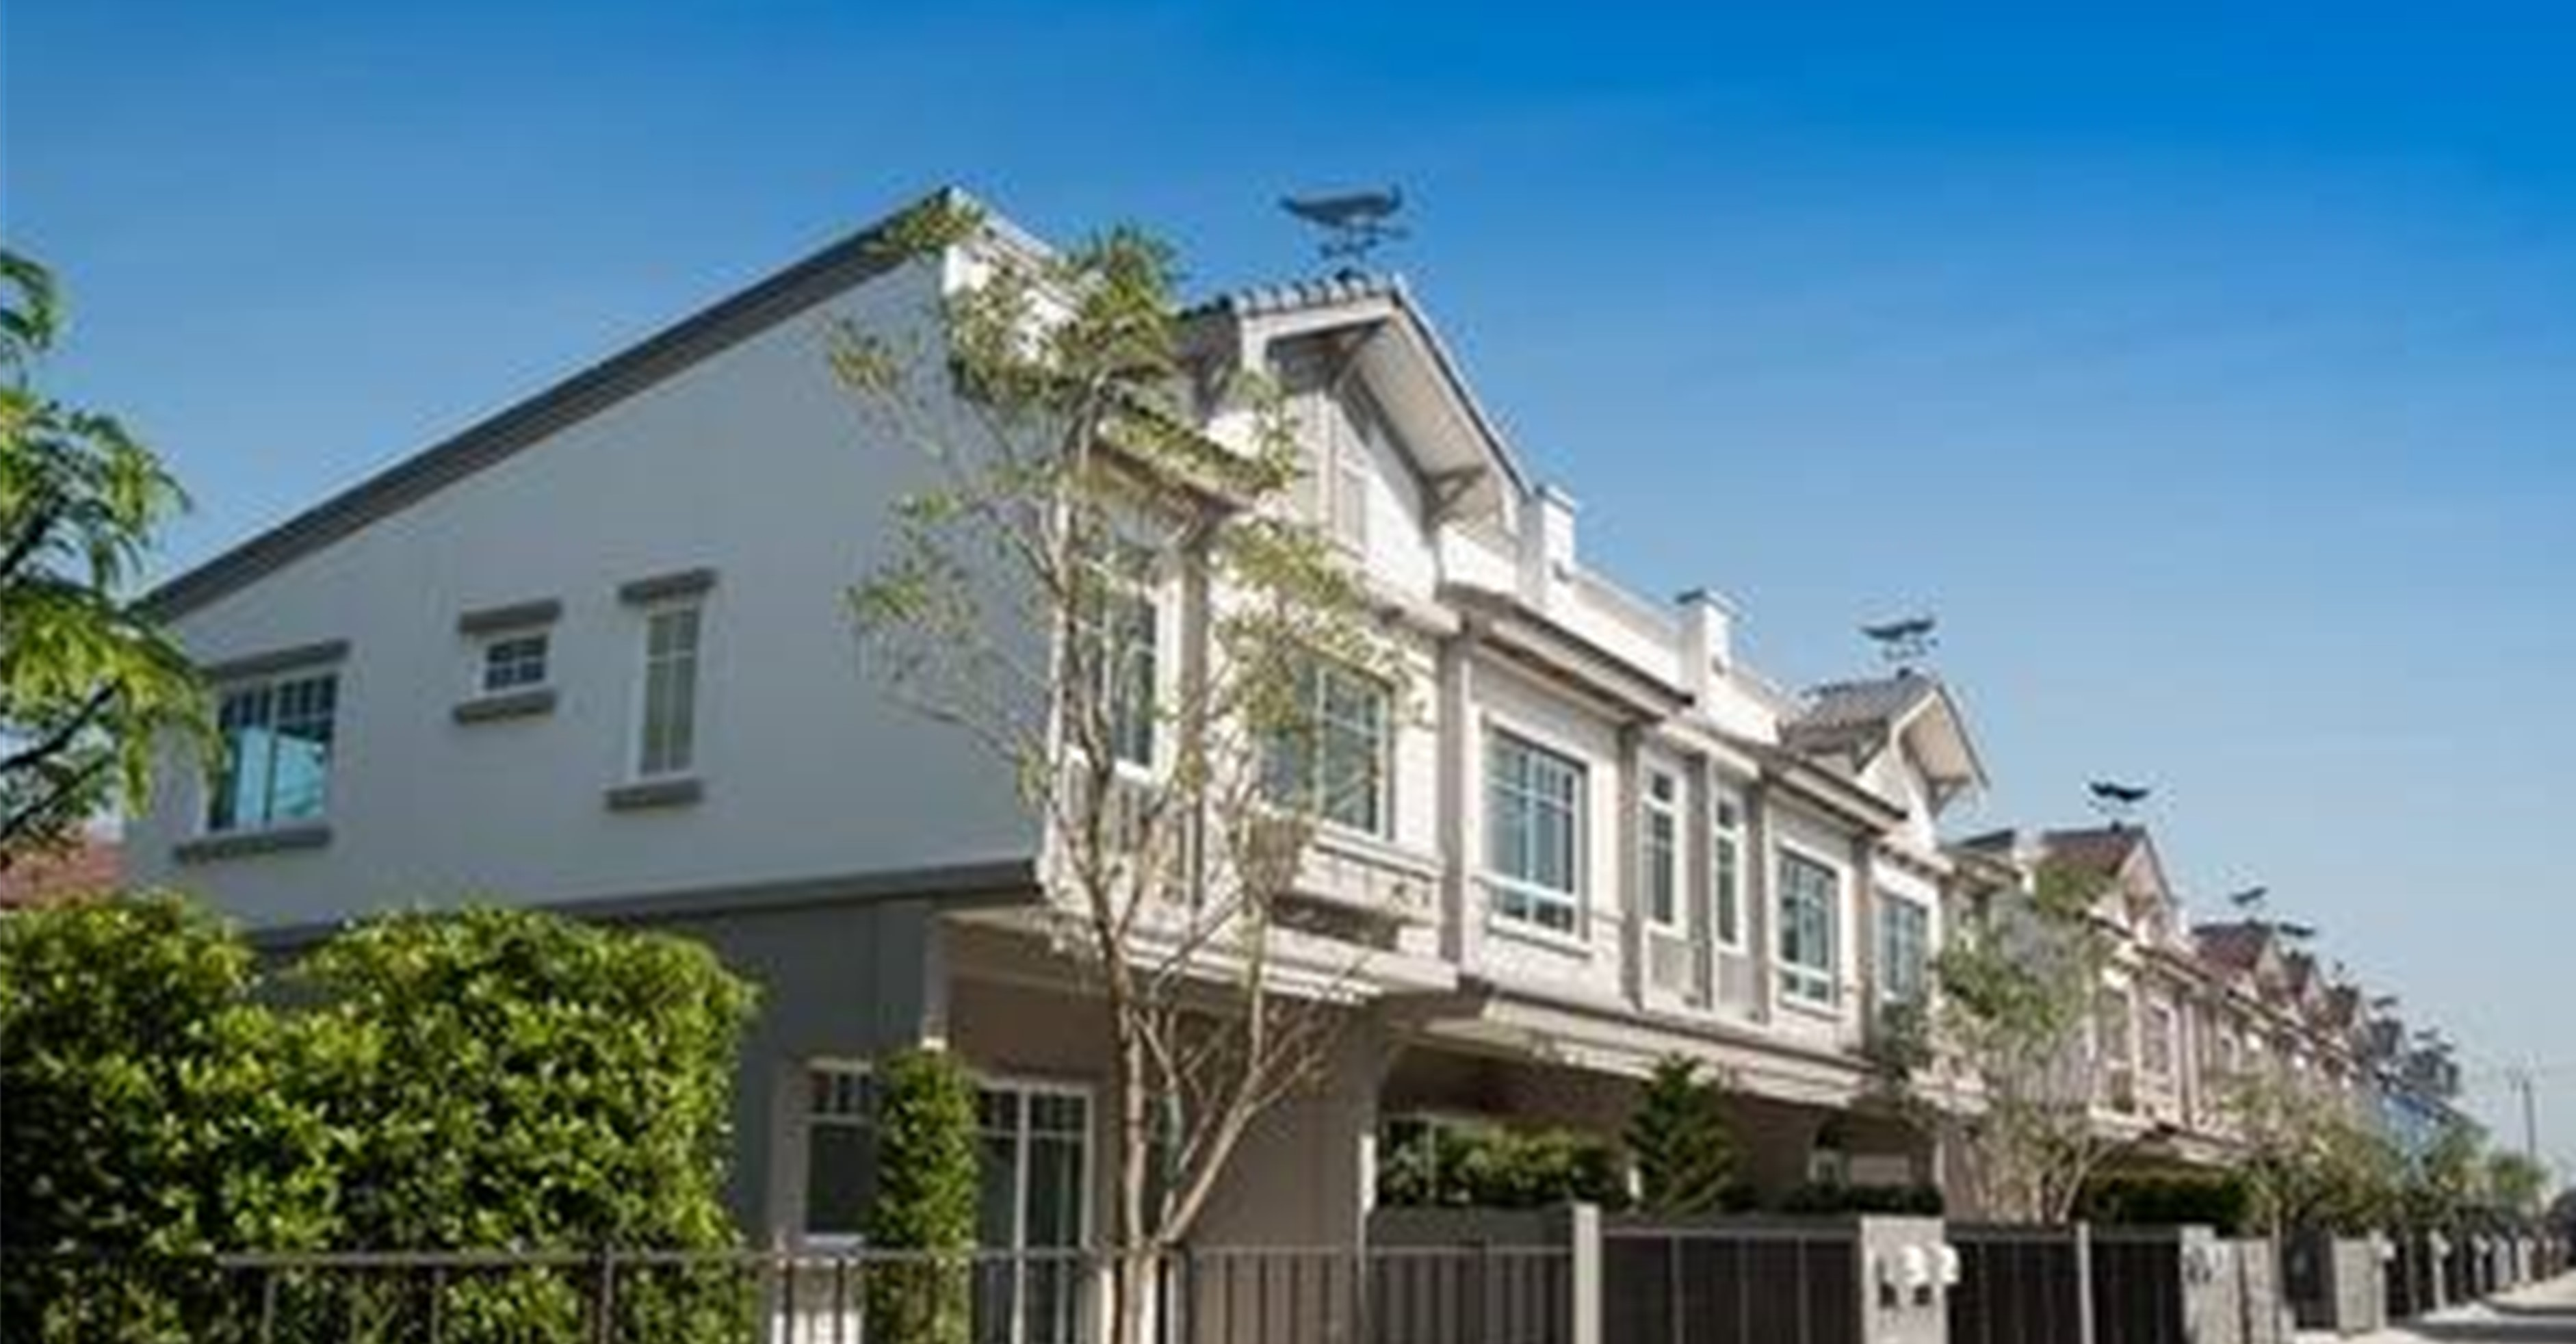 Terminology Tip: Condo Townhouse vs Freehold Townhouse